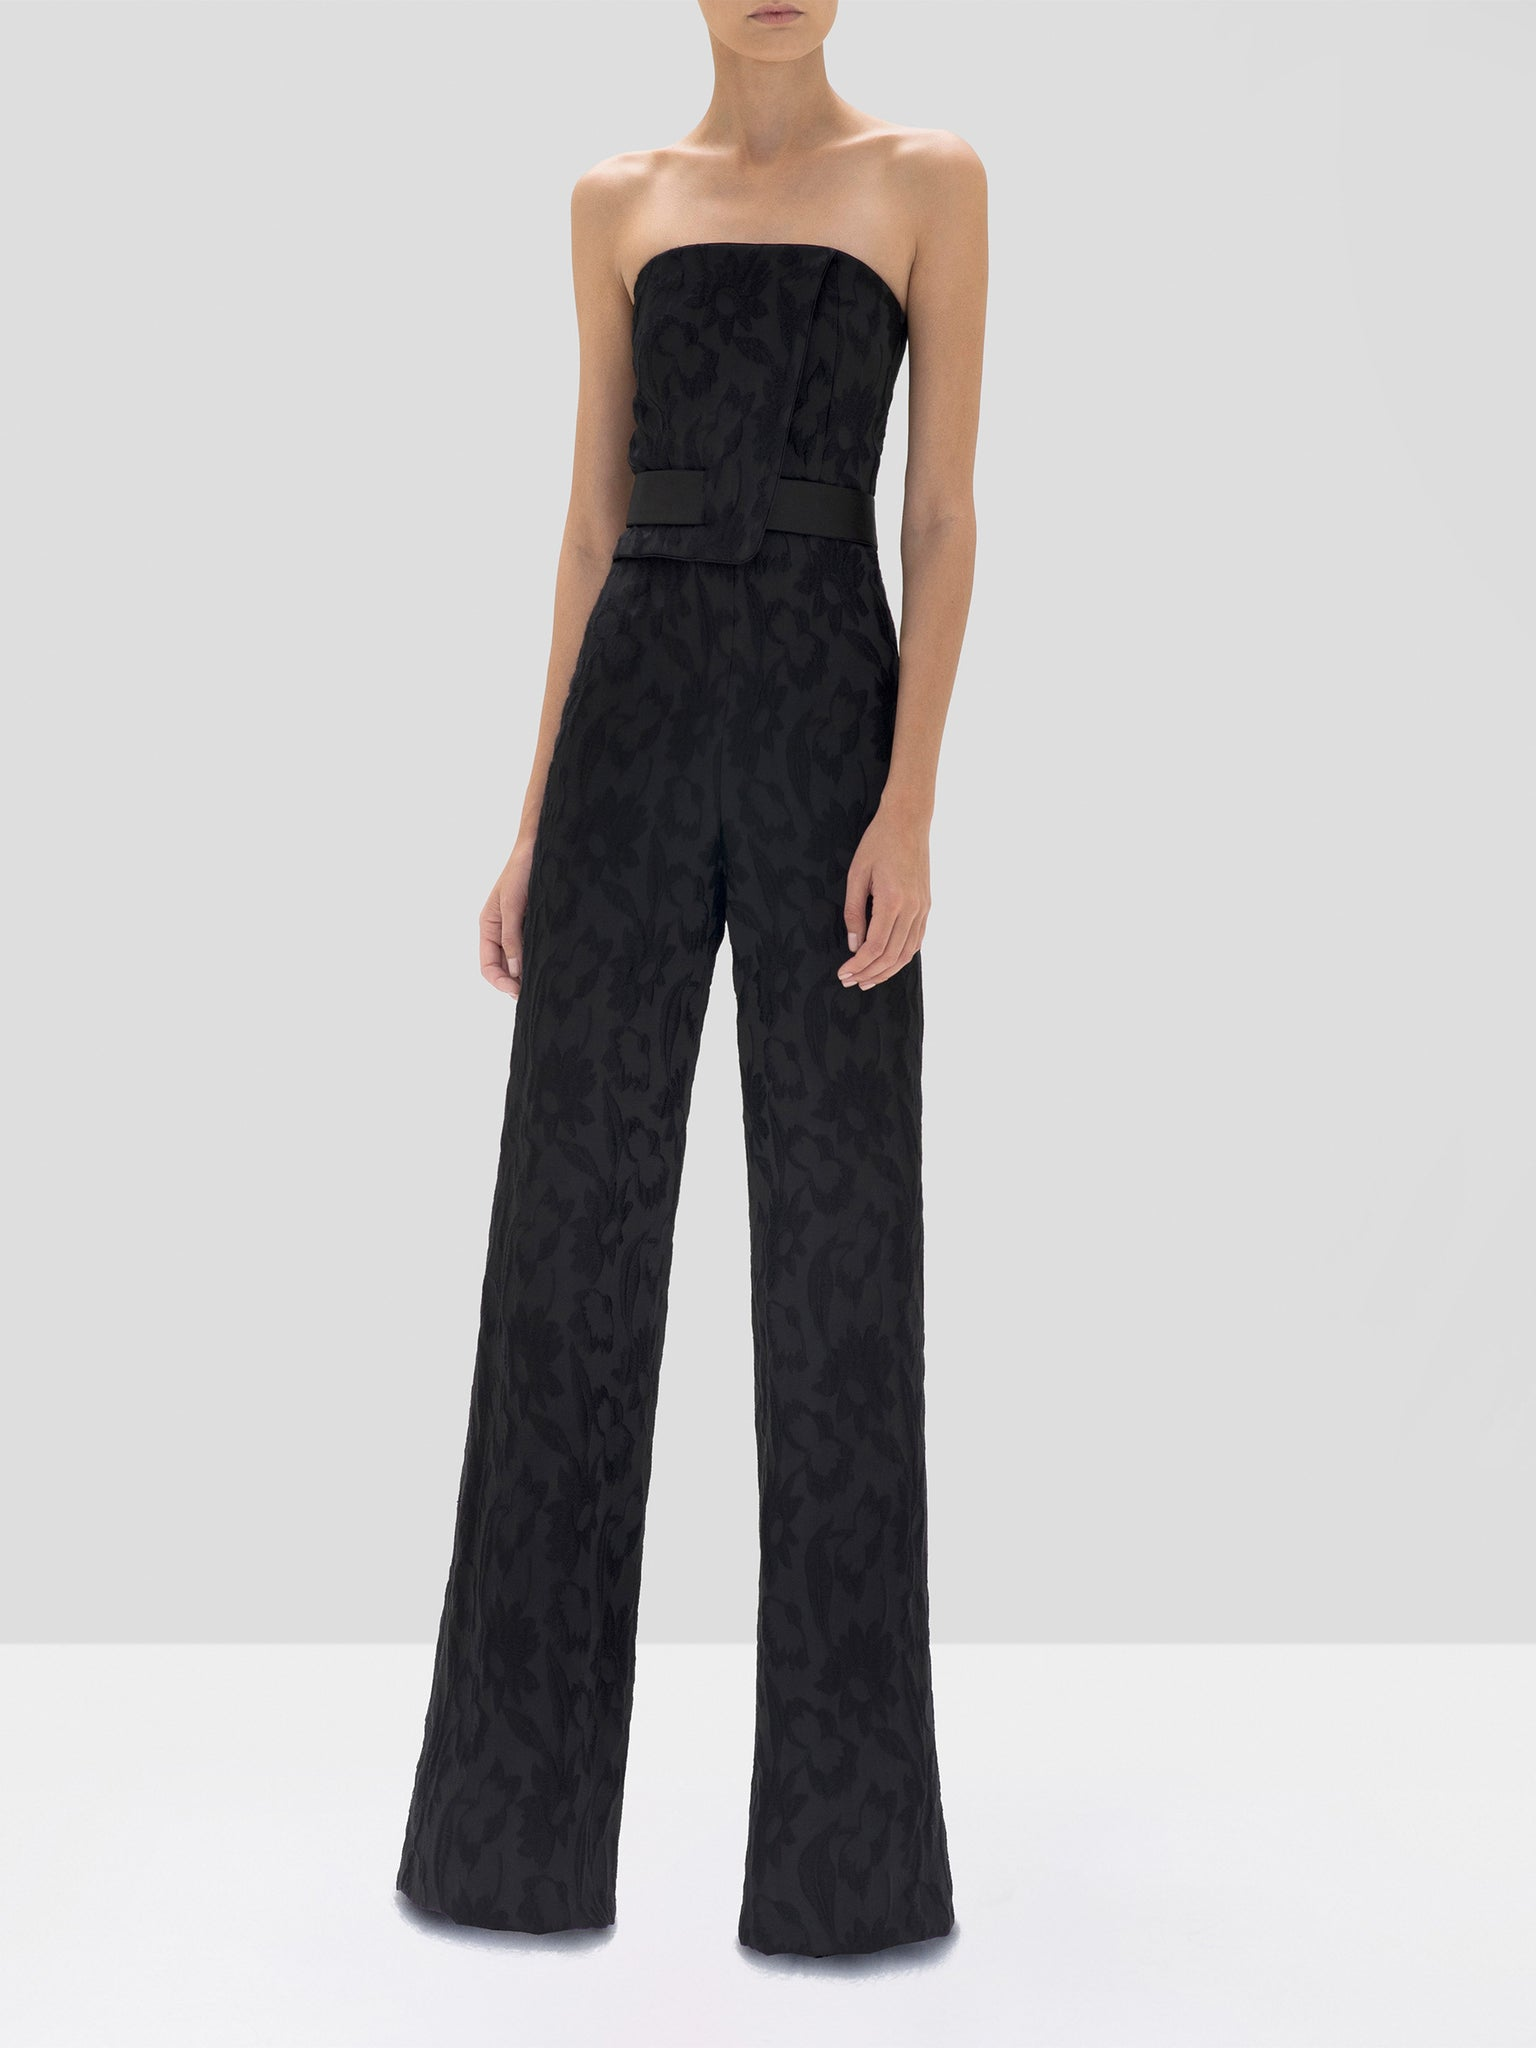 Alexis Venetia Jumpsuit in Black Floral Jacquard from the Fall Winter 2019 Ready To Wear Collection